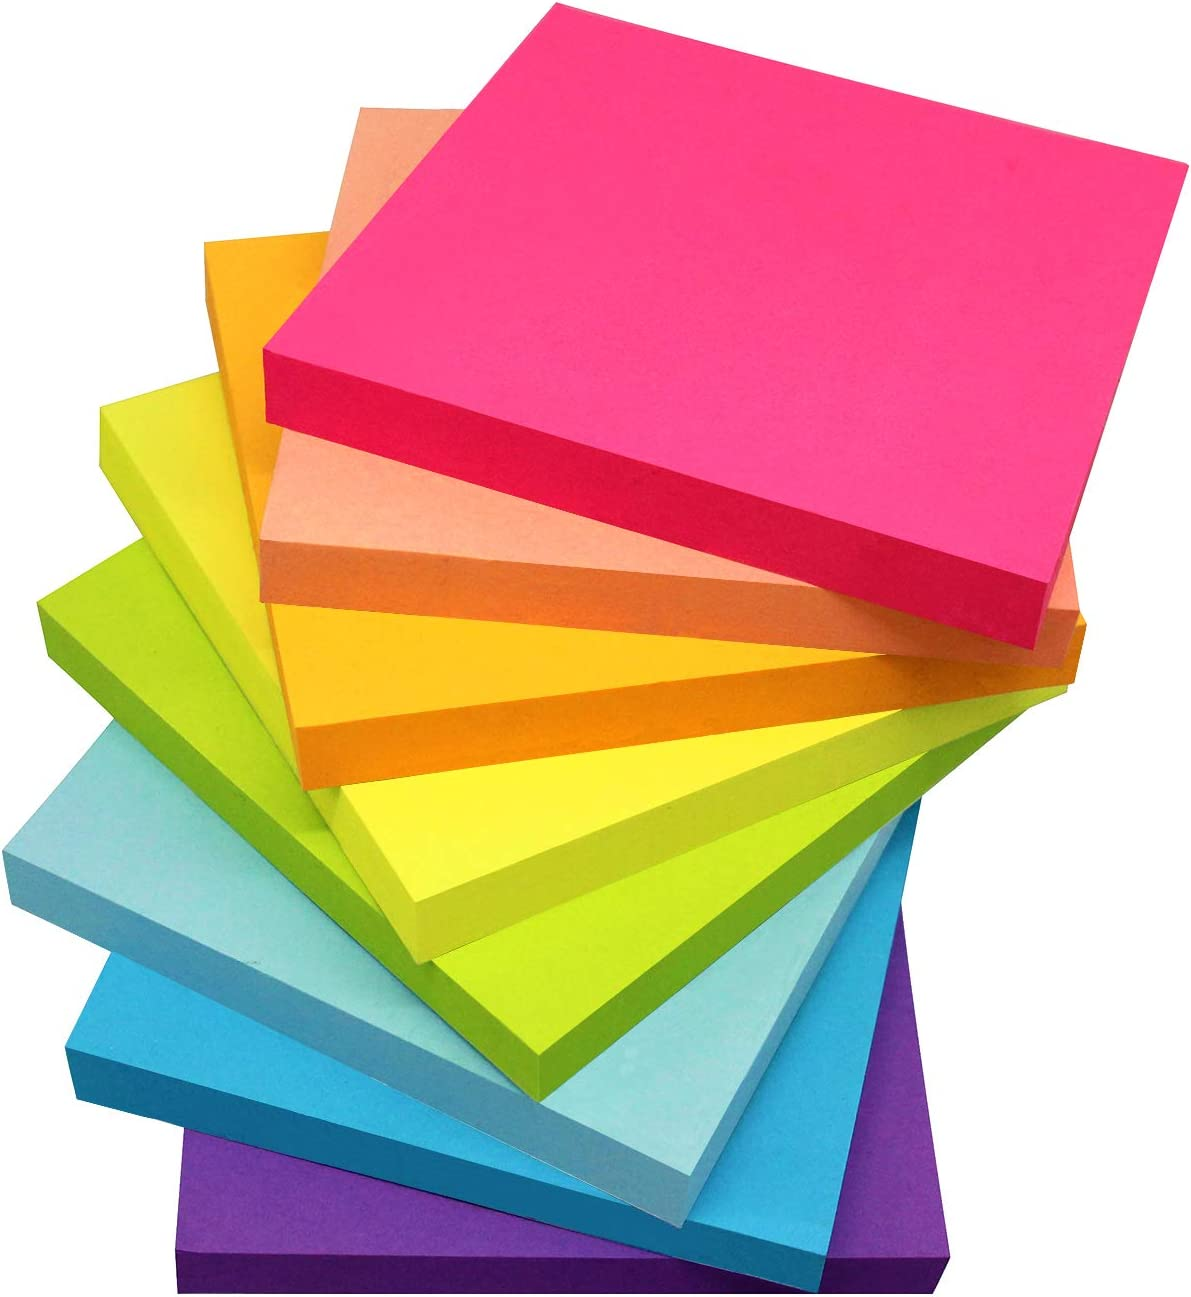 Pop Up Sticky Notes 3x3 Inches,Bright Colors Self-Stick Pads, Easy to Post for Home, Office, Notebook, 24 Pads/Pack